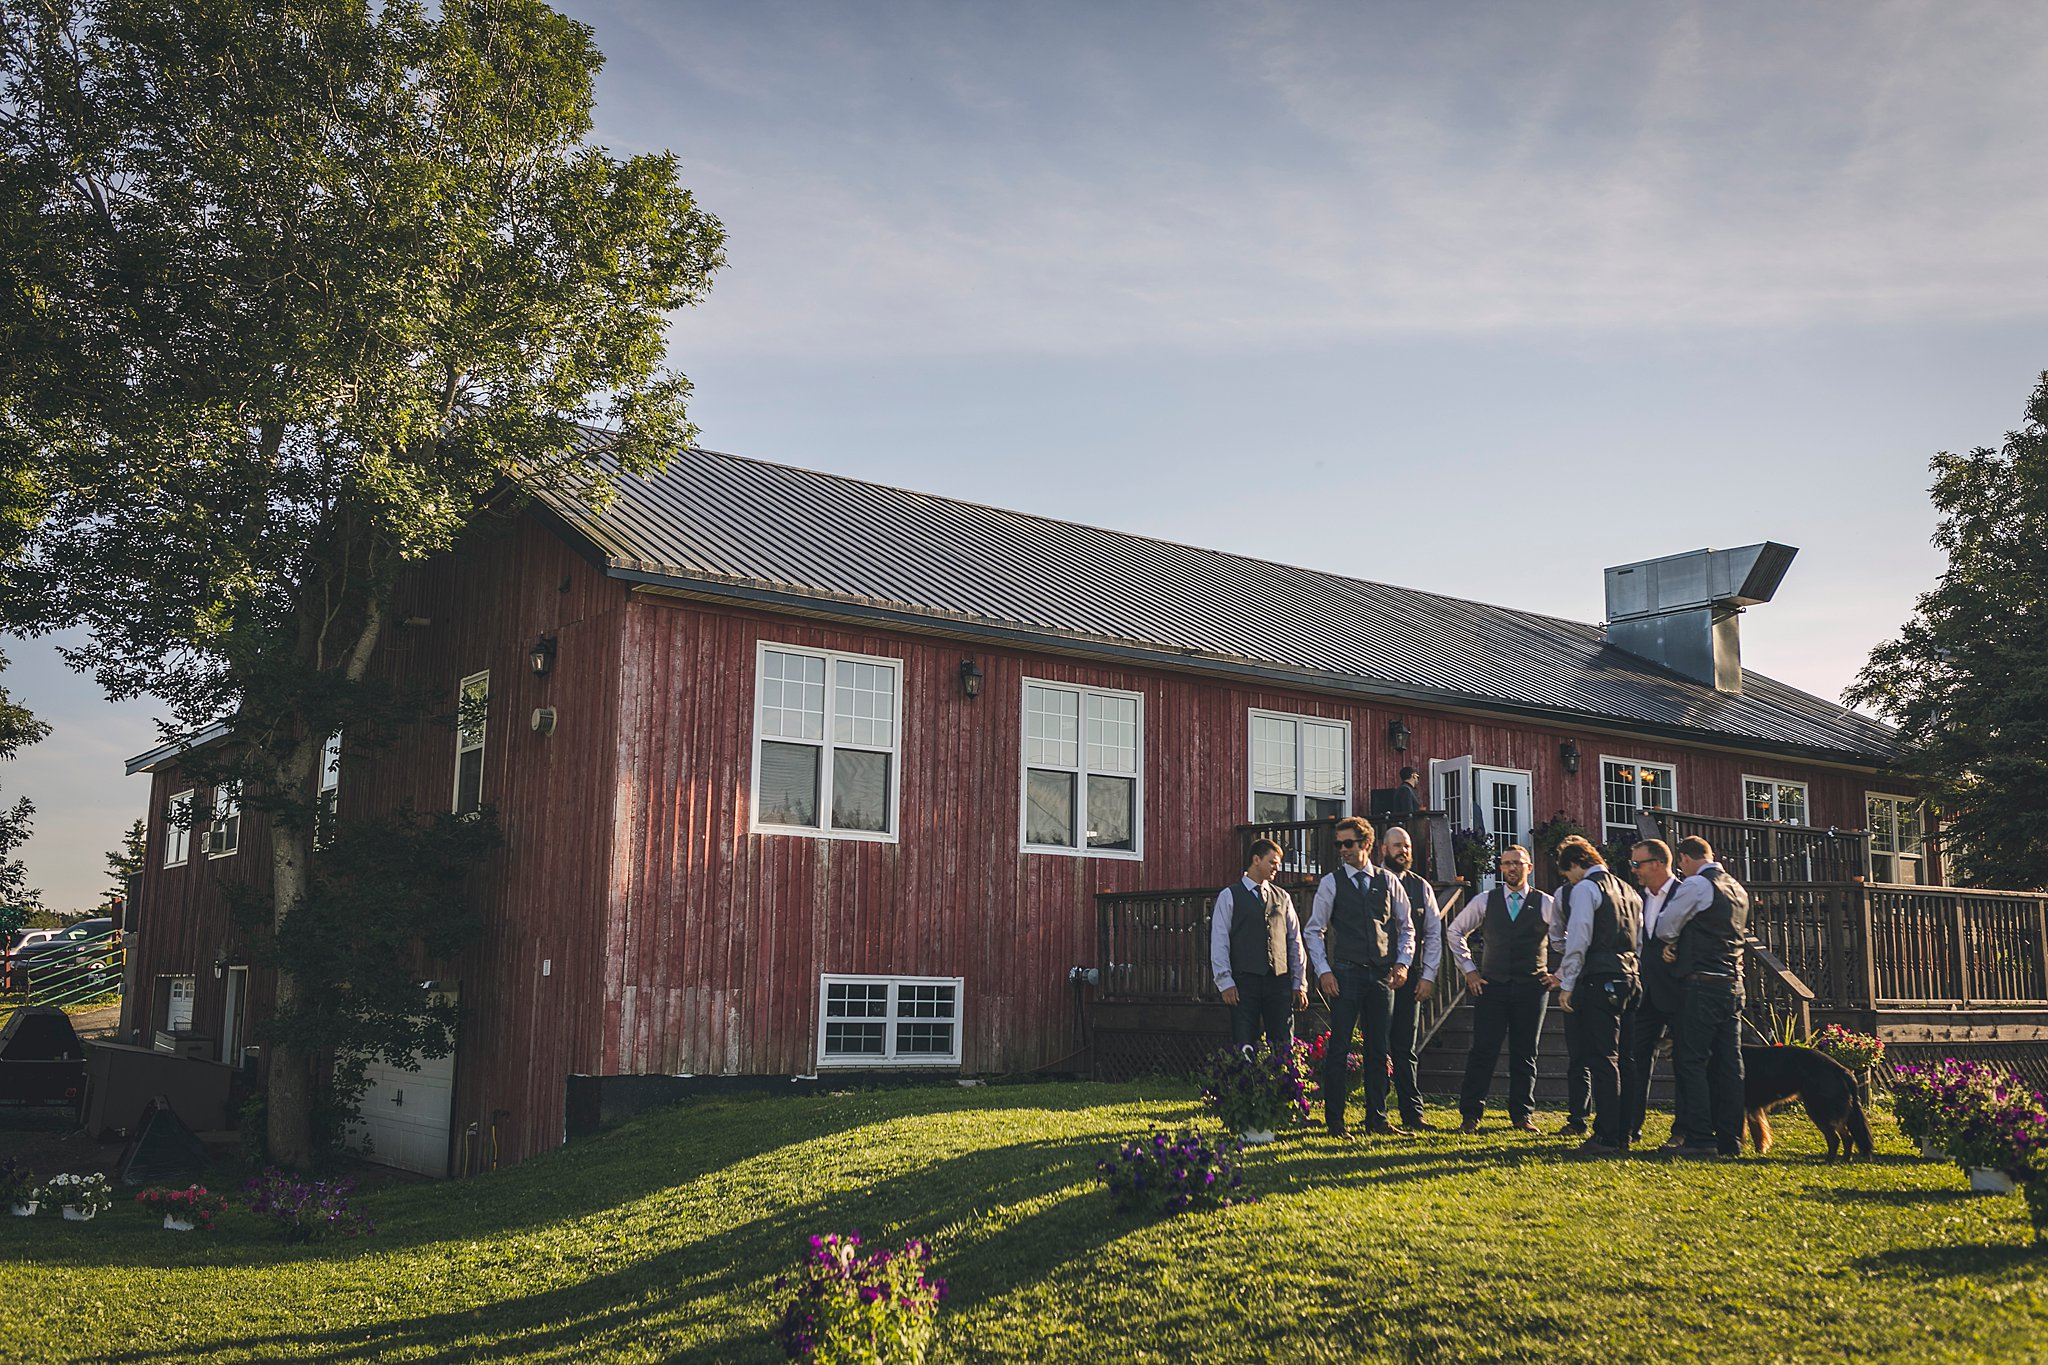 Groom and his groomsmen wait for the ceremony to start at a St. John's wedding held at Lester's Farm Chalet